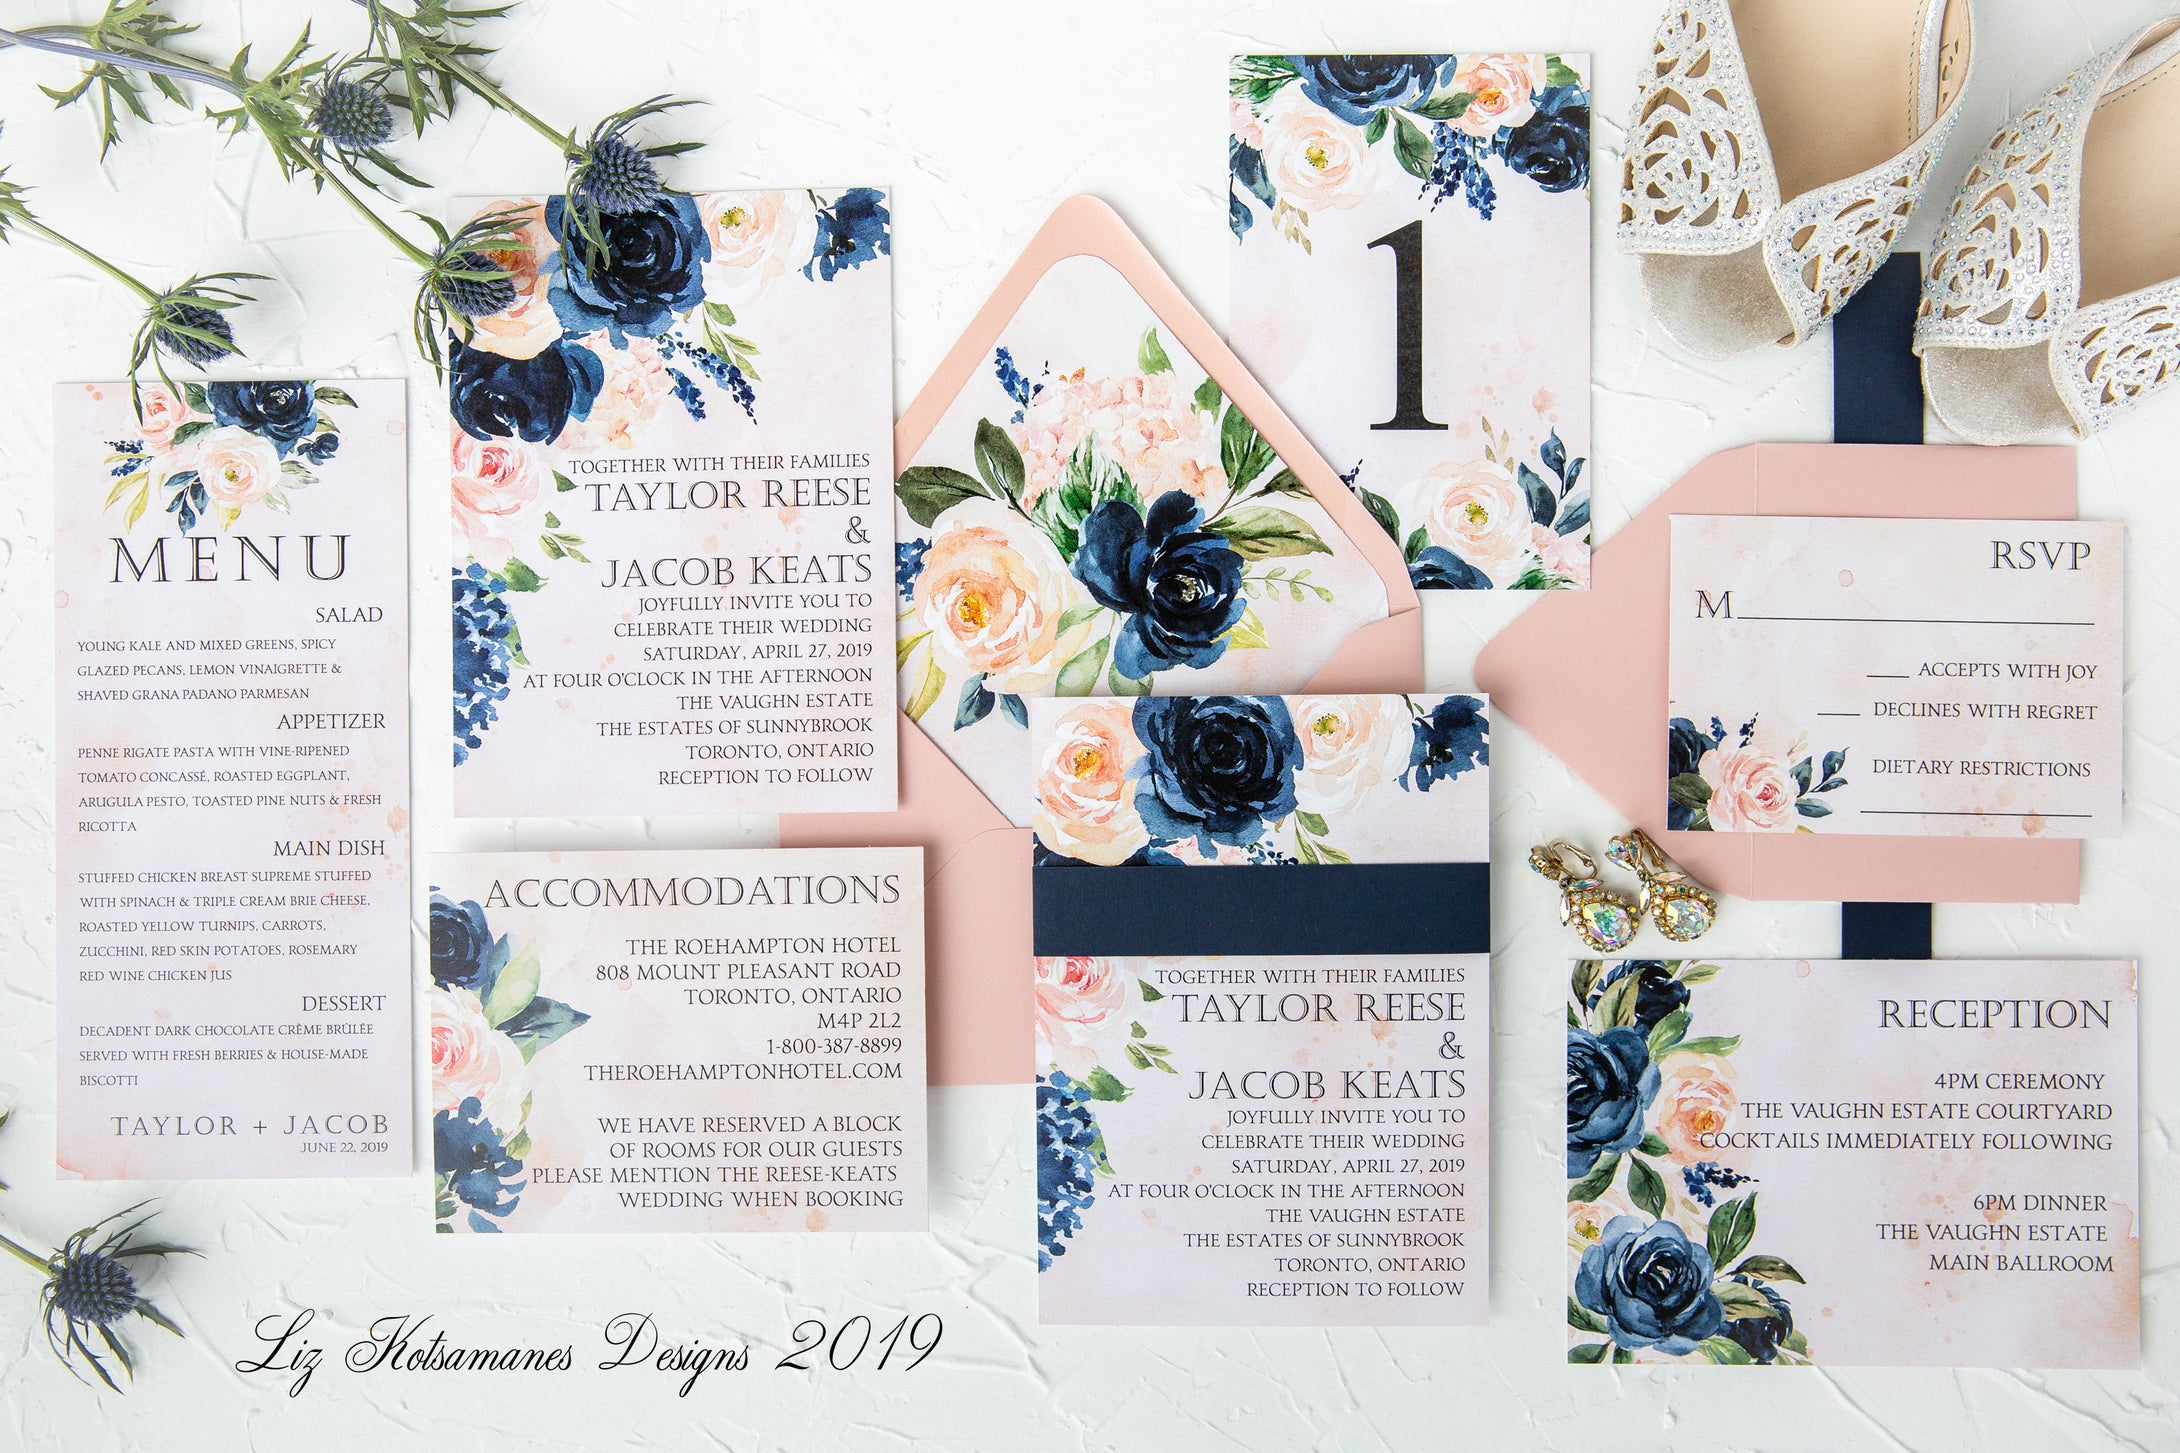 Stunning navy and blush wedding invitation suite with dusty rose envelope created by Liz Kotsamanes Designs, Cambridge, Ontario, Canada, elegant luxury wedding stationery